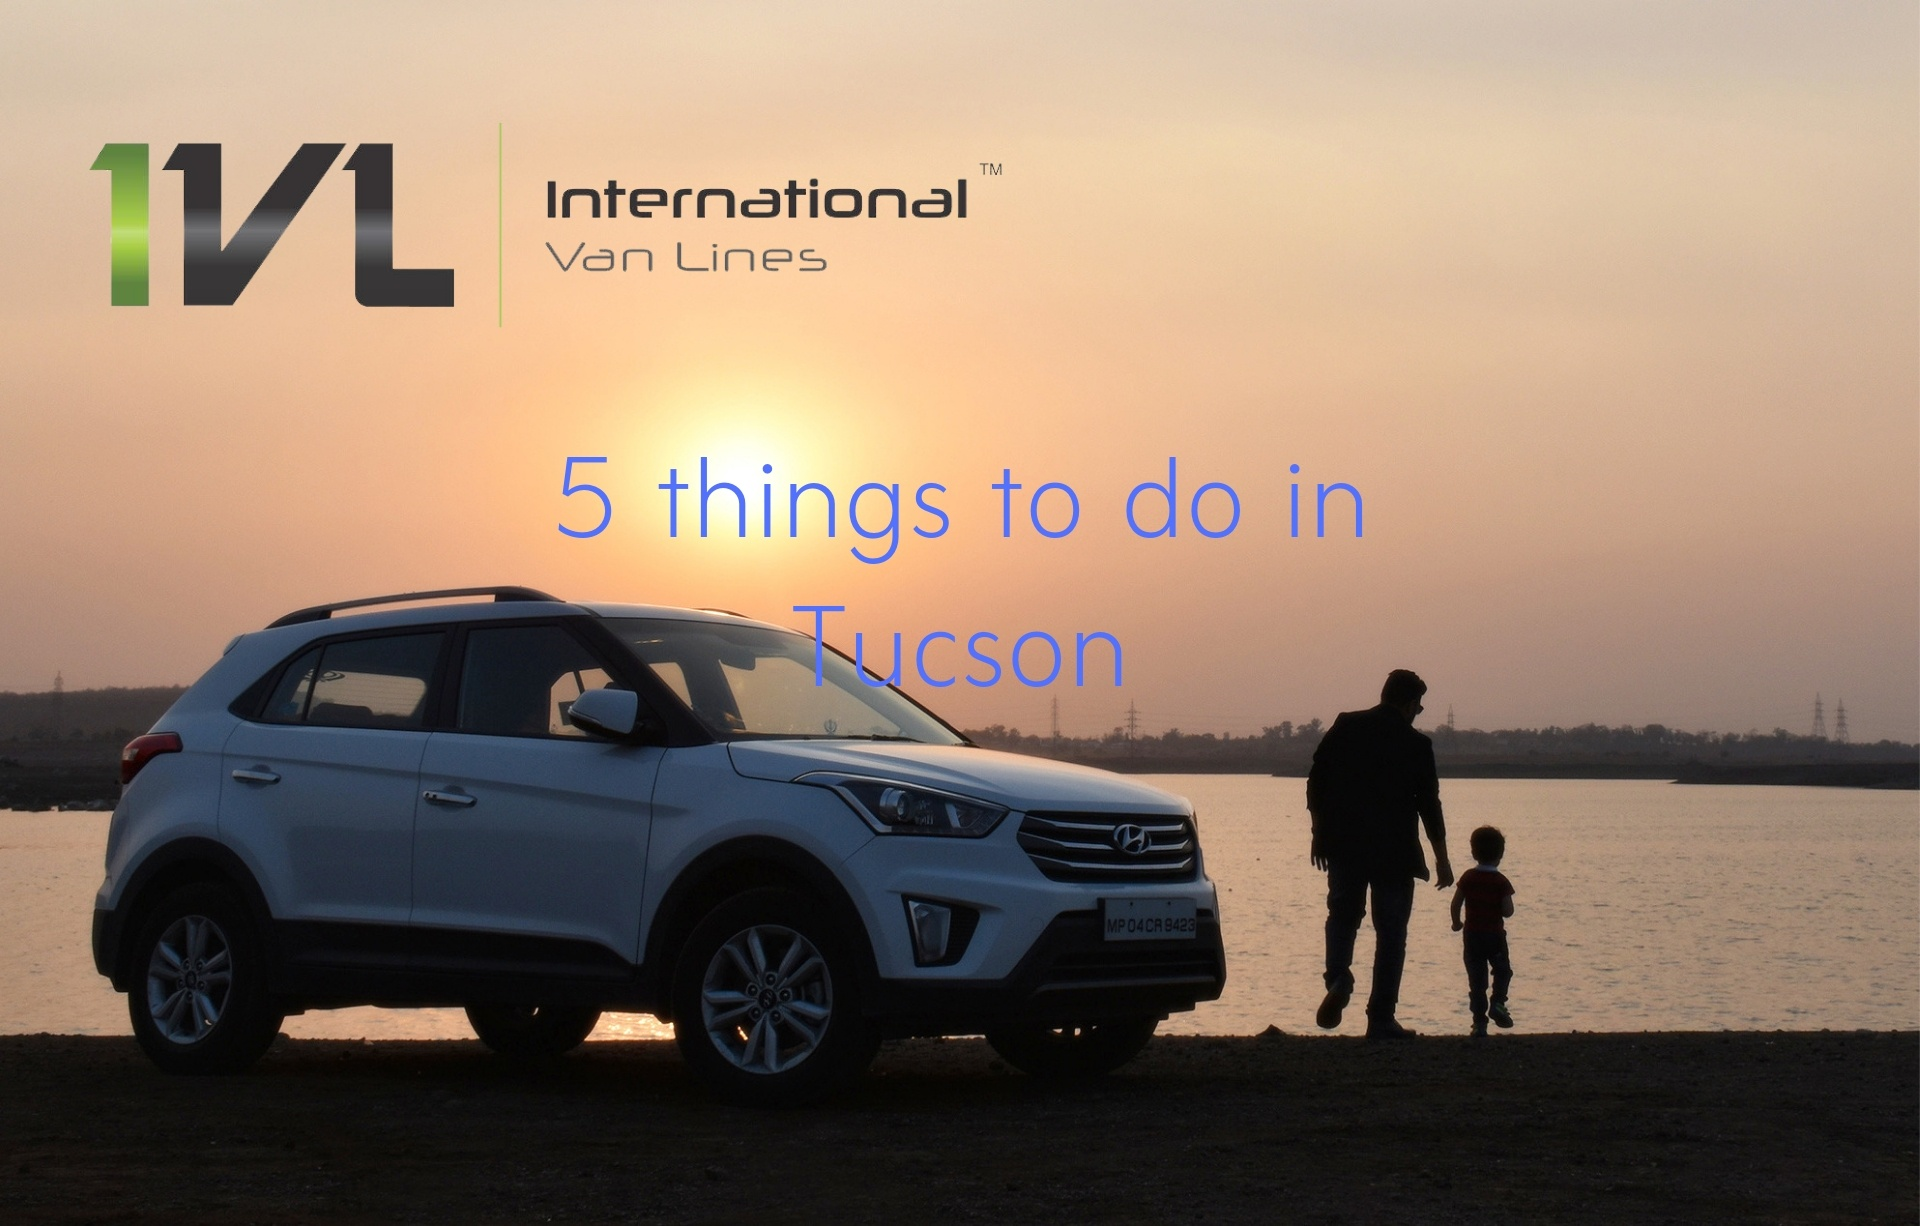 Things to experience in Tucson, AZ